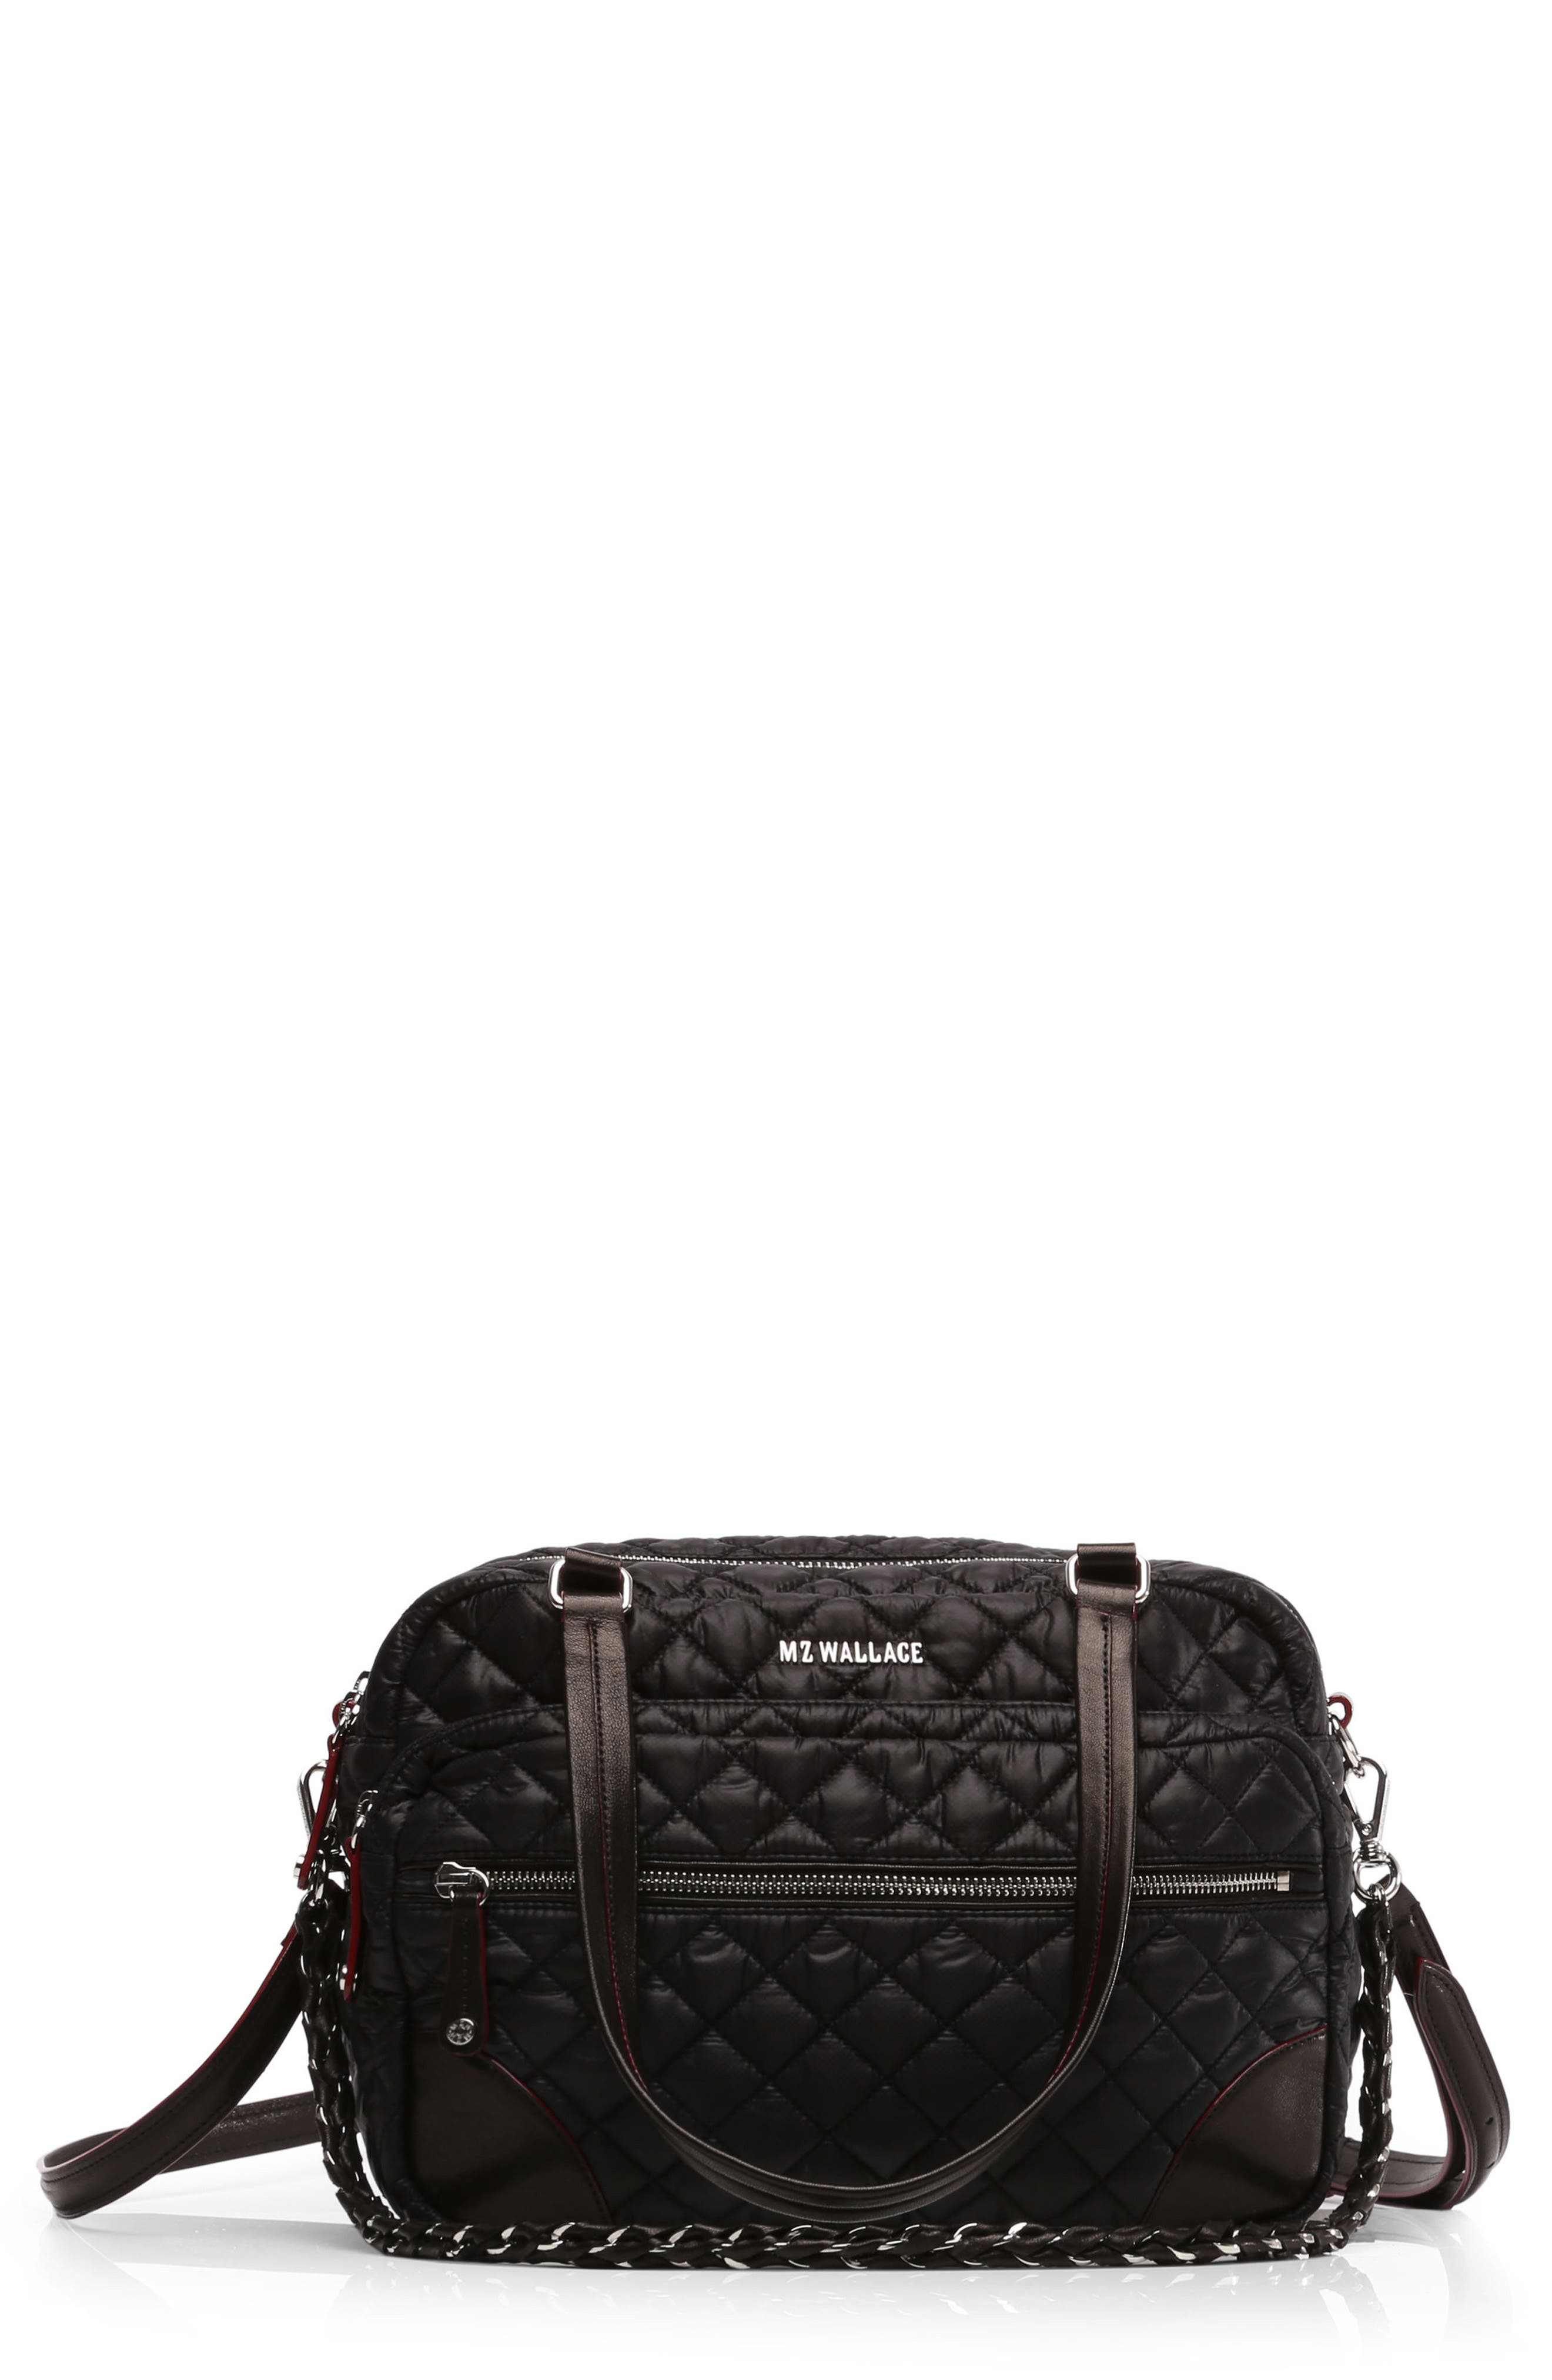 Alternate Image 1 Selected - MZ Wallace Medium Crosby Quilted Oxford Nylon Crossbody Bag